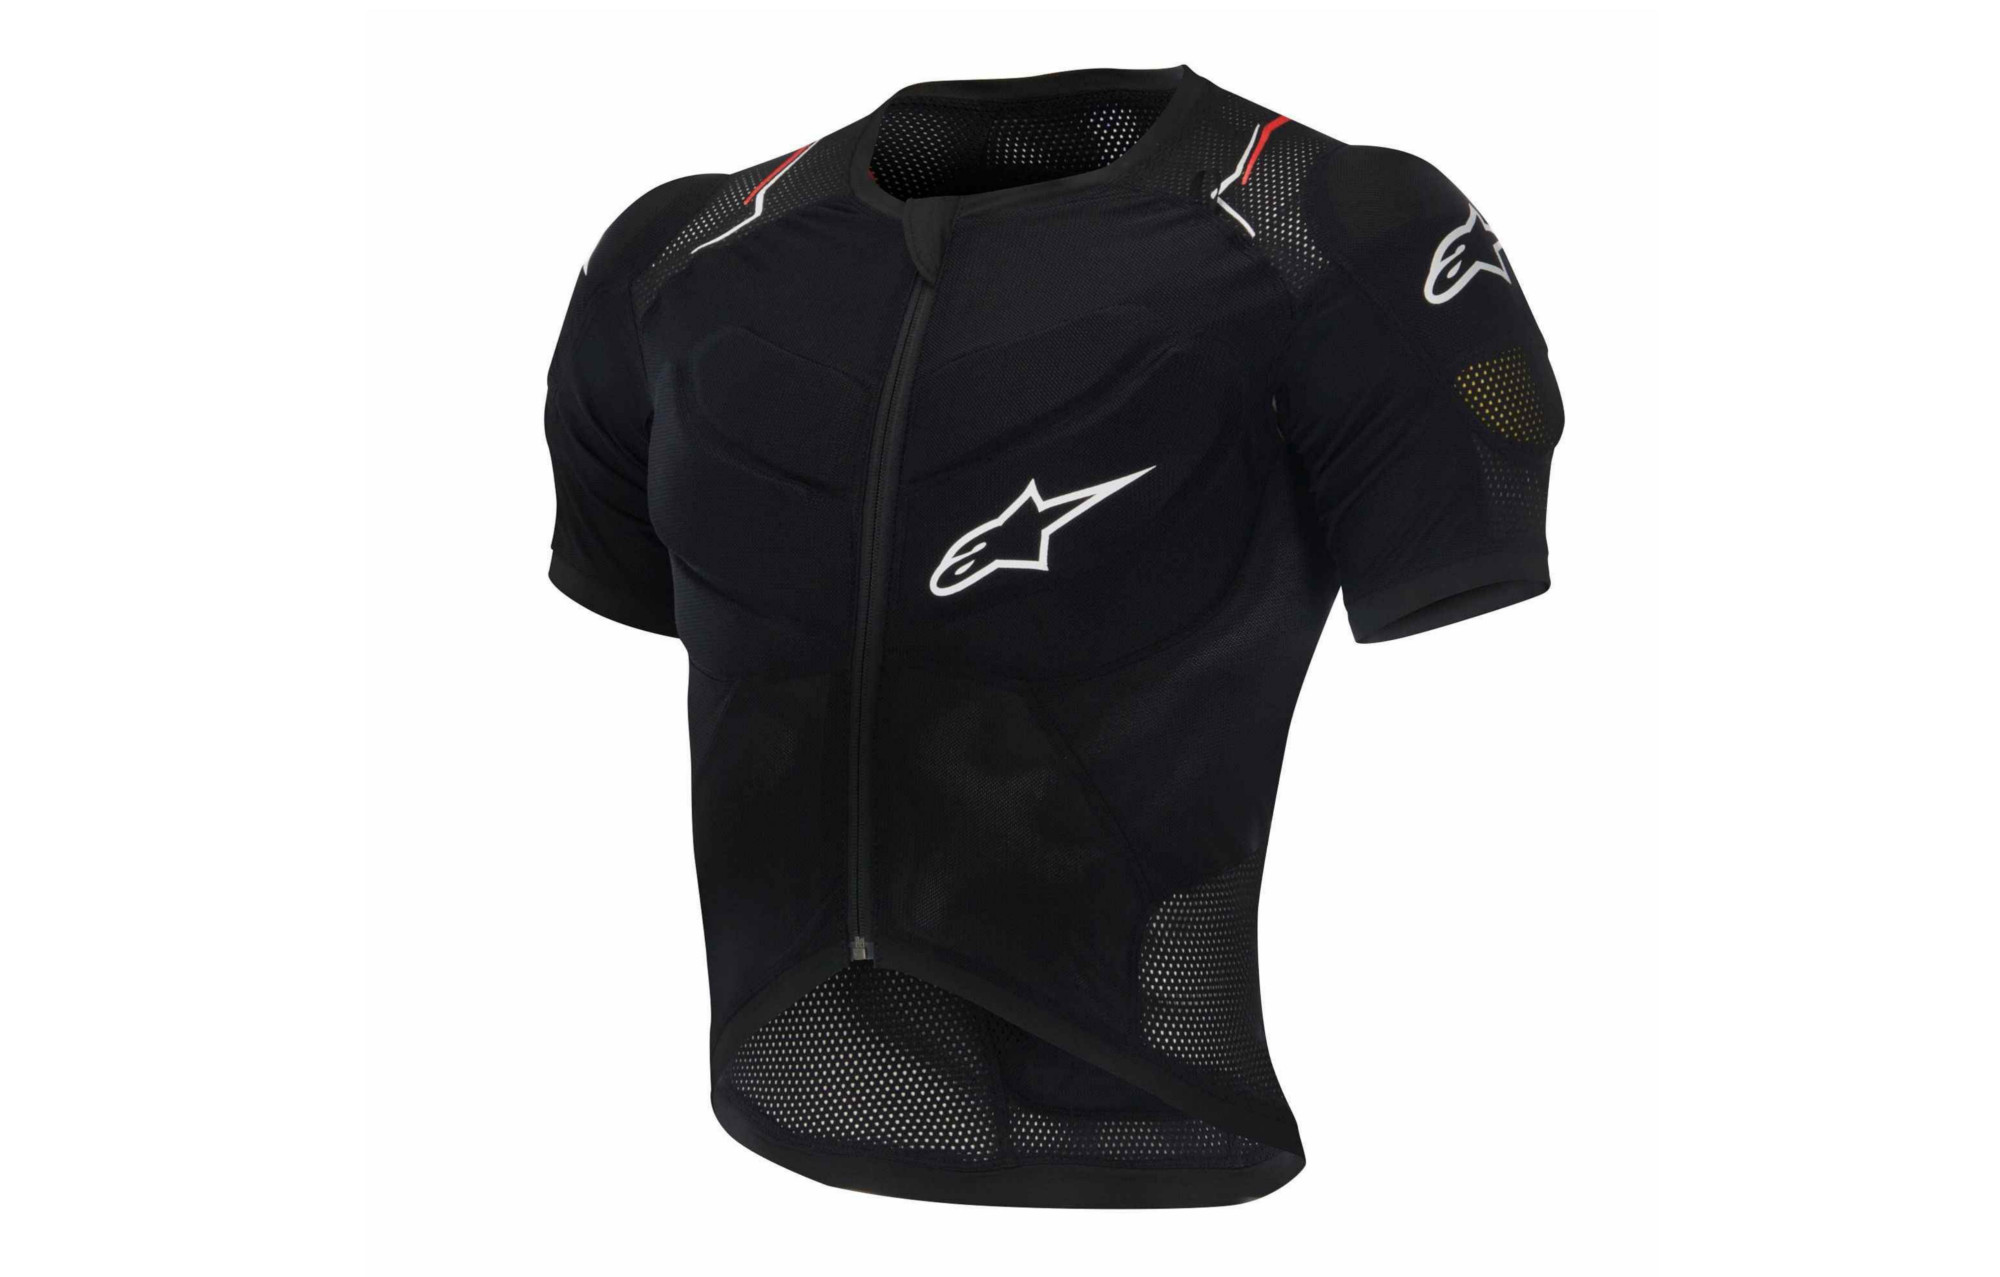 alpinestars veste protection int grale evolution noir. Black Bedroom Furniture Sets. Home Design Ideas